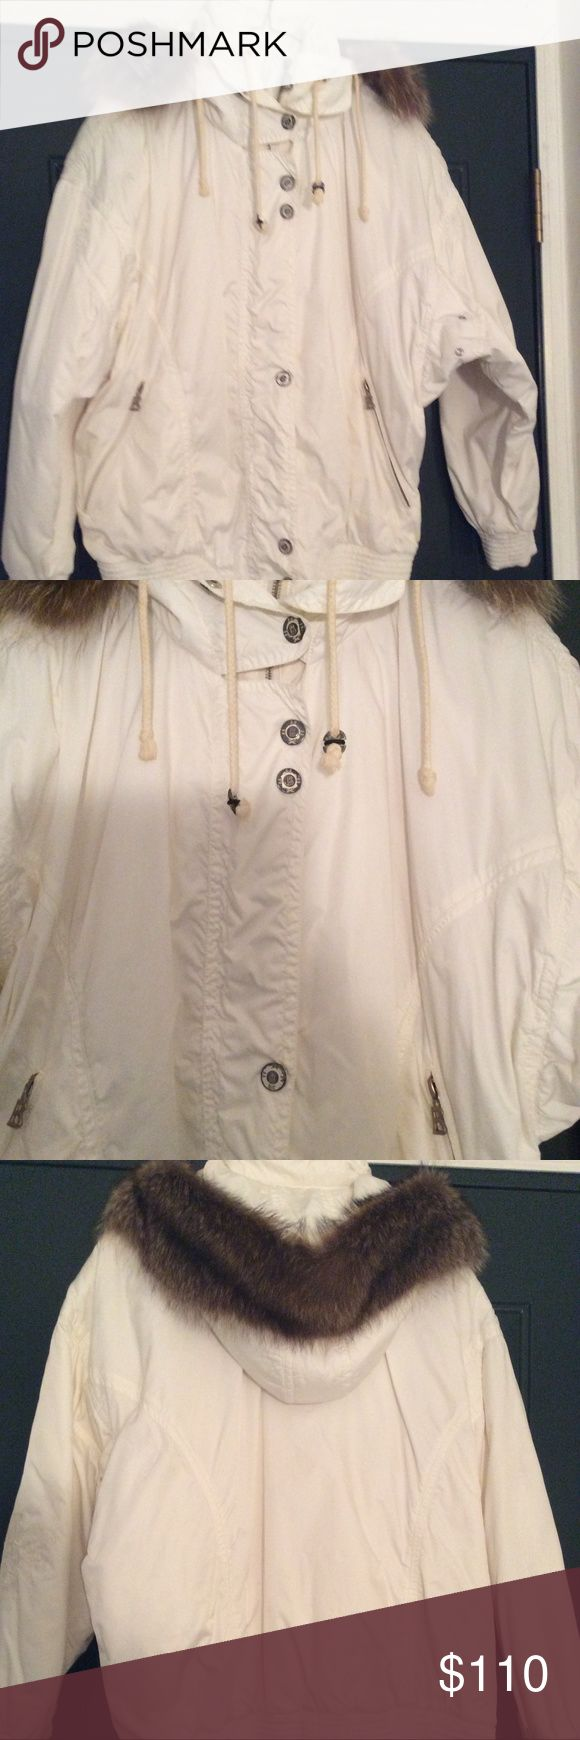 Bogner Bogner ski jacket,  attached hood,  fur on hood detaches with snaps.  Decorative B zipper pulls on front closure plus decorative B pulls on both front pockets.  Also snaps closed with decorative B snaps.  Lightweight for skiing or running around town.  Decorative stitching on both sleeves.  rivets under arm for extra venting.  Excellent condition.  Purchased in Aspen Co. Bogner Jackets & Coats